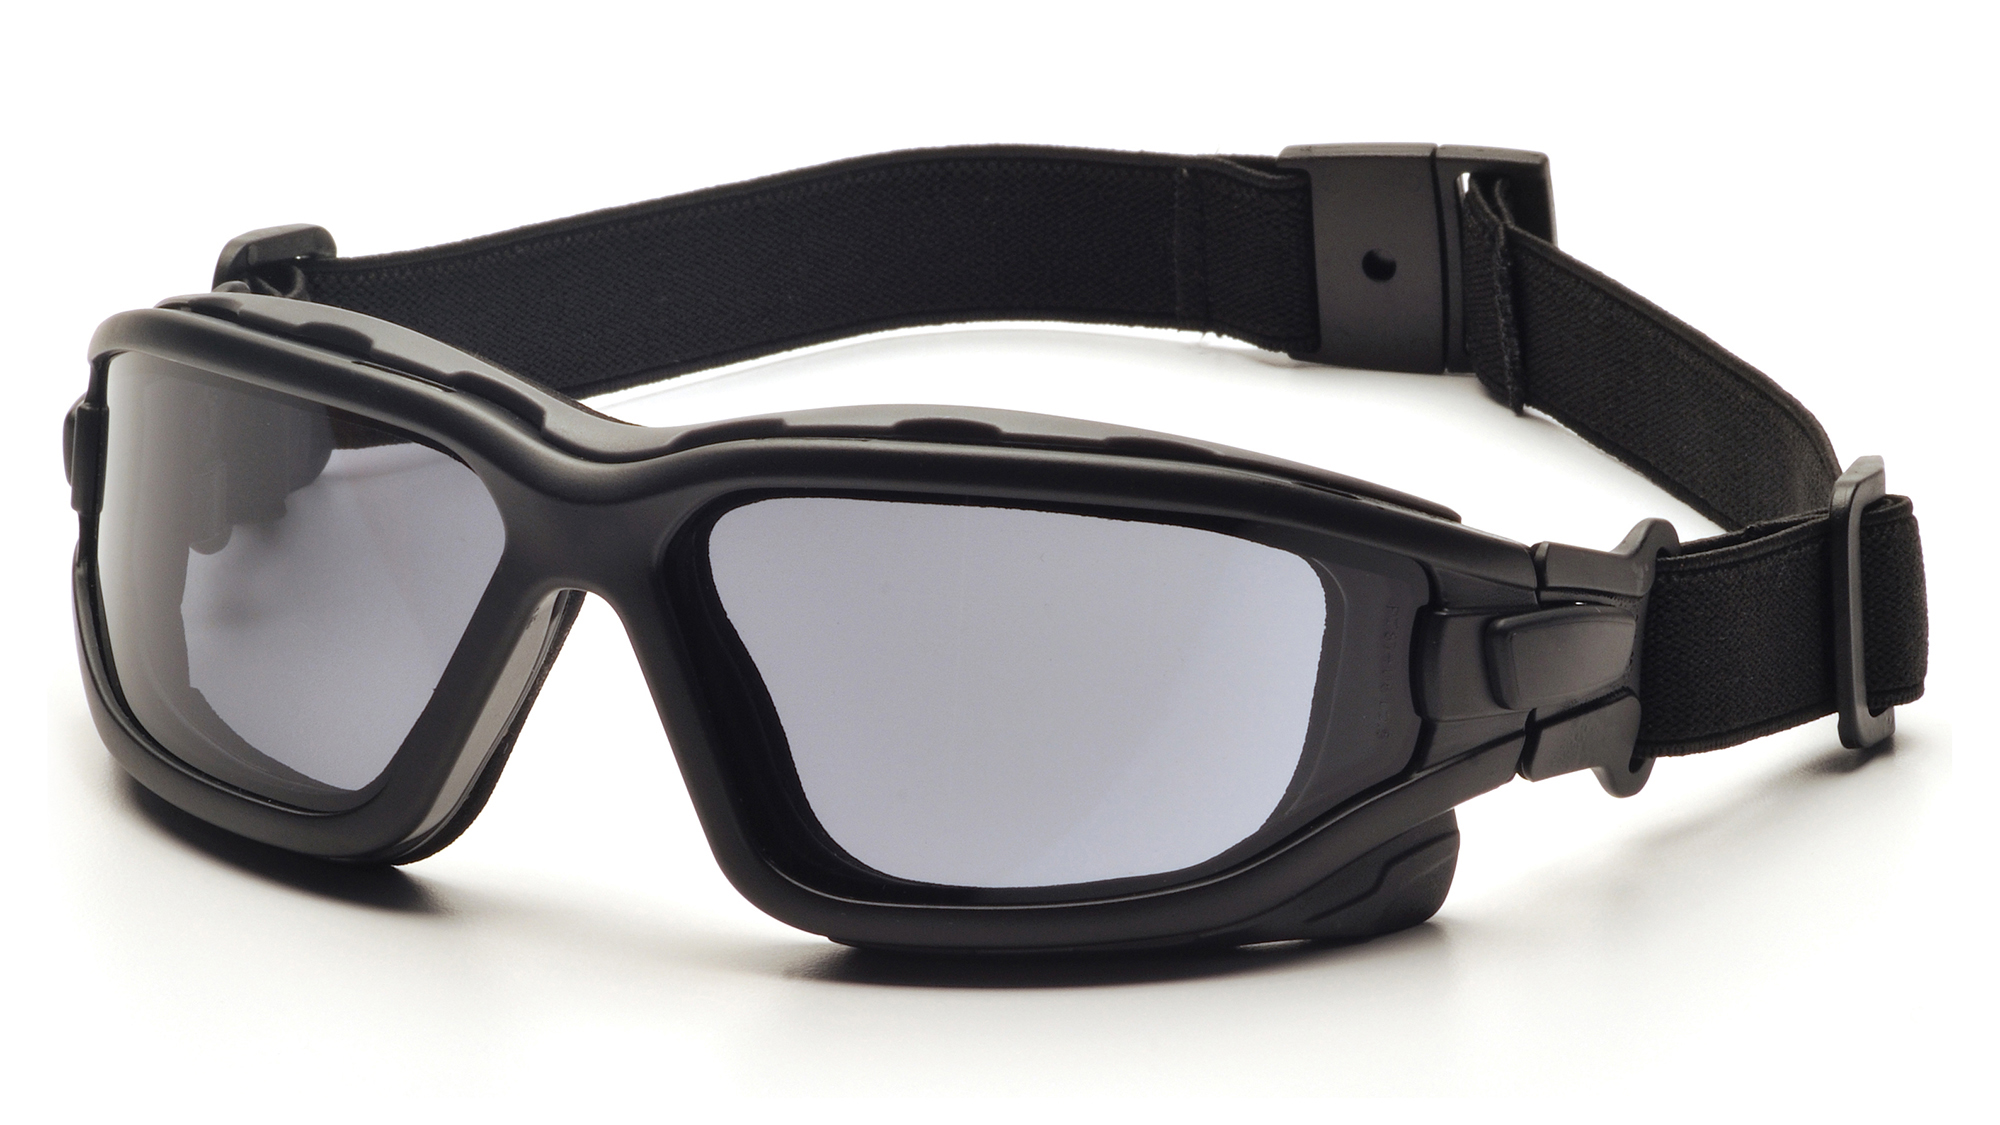 Pyramex SB7020SDT I-Force Safety Eyewear, Gray Dual Anti-Fog Lens with Black Temples / Strap, Box/12